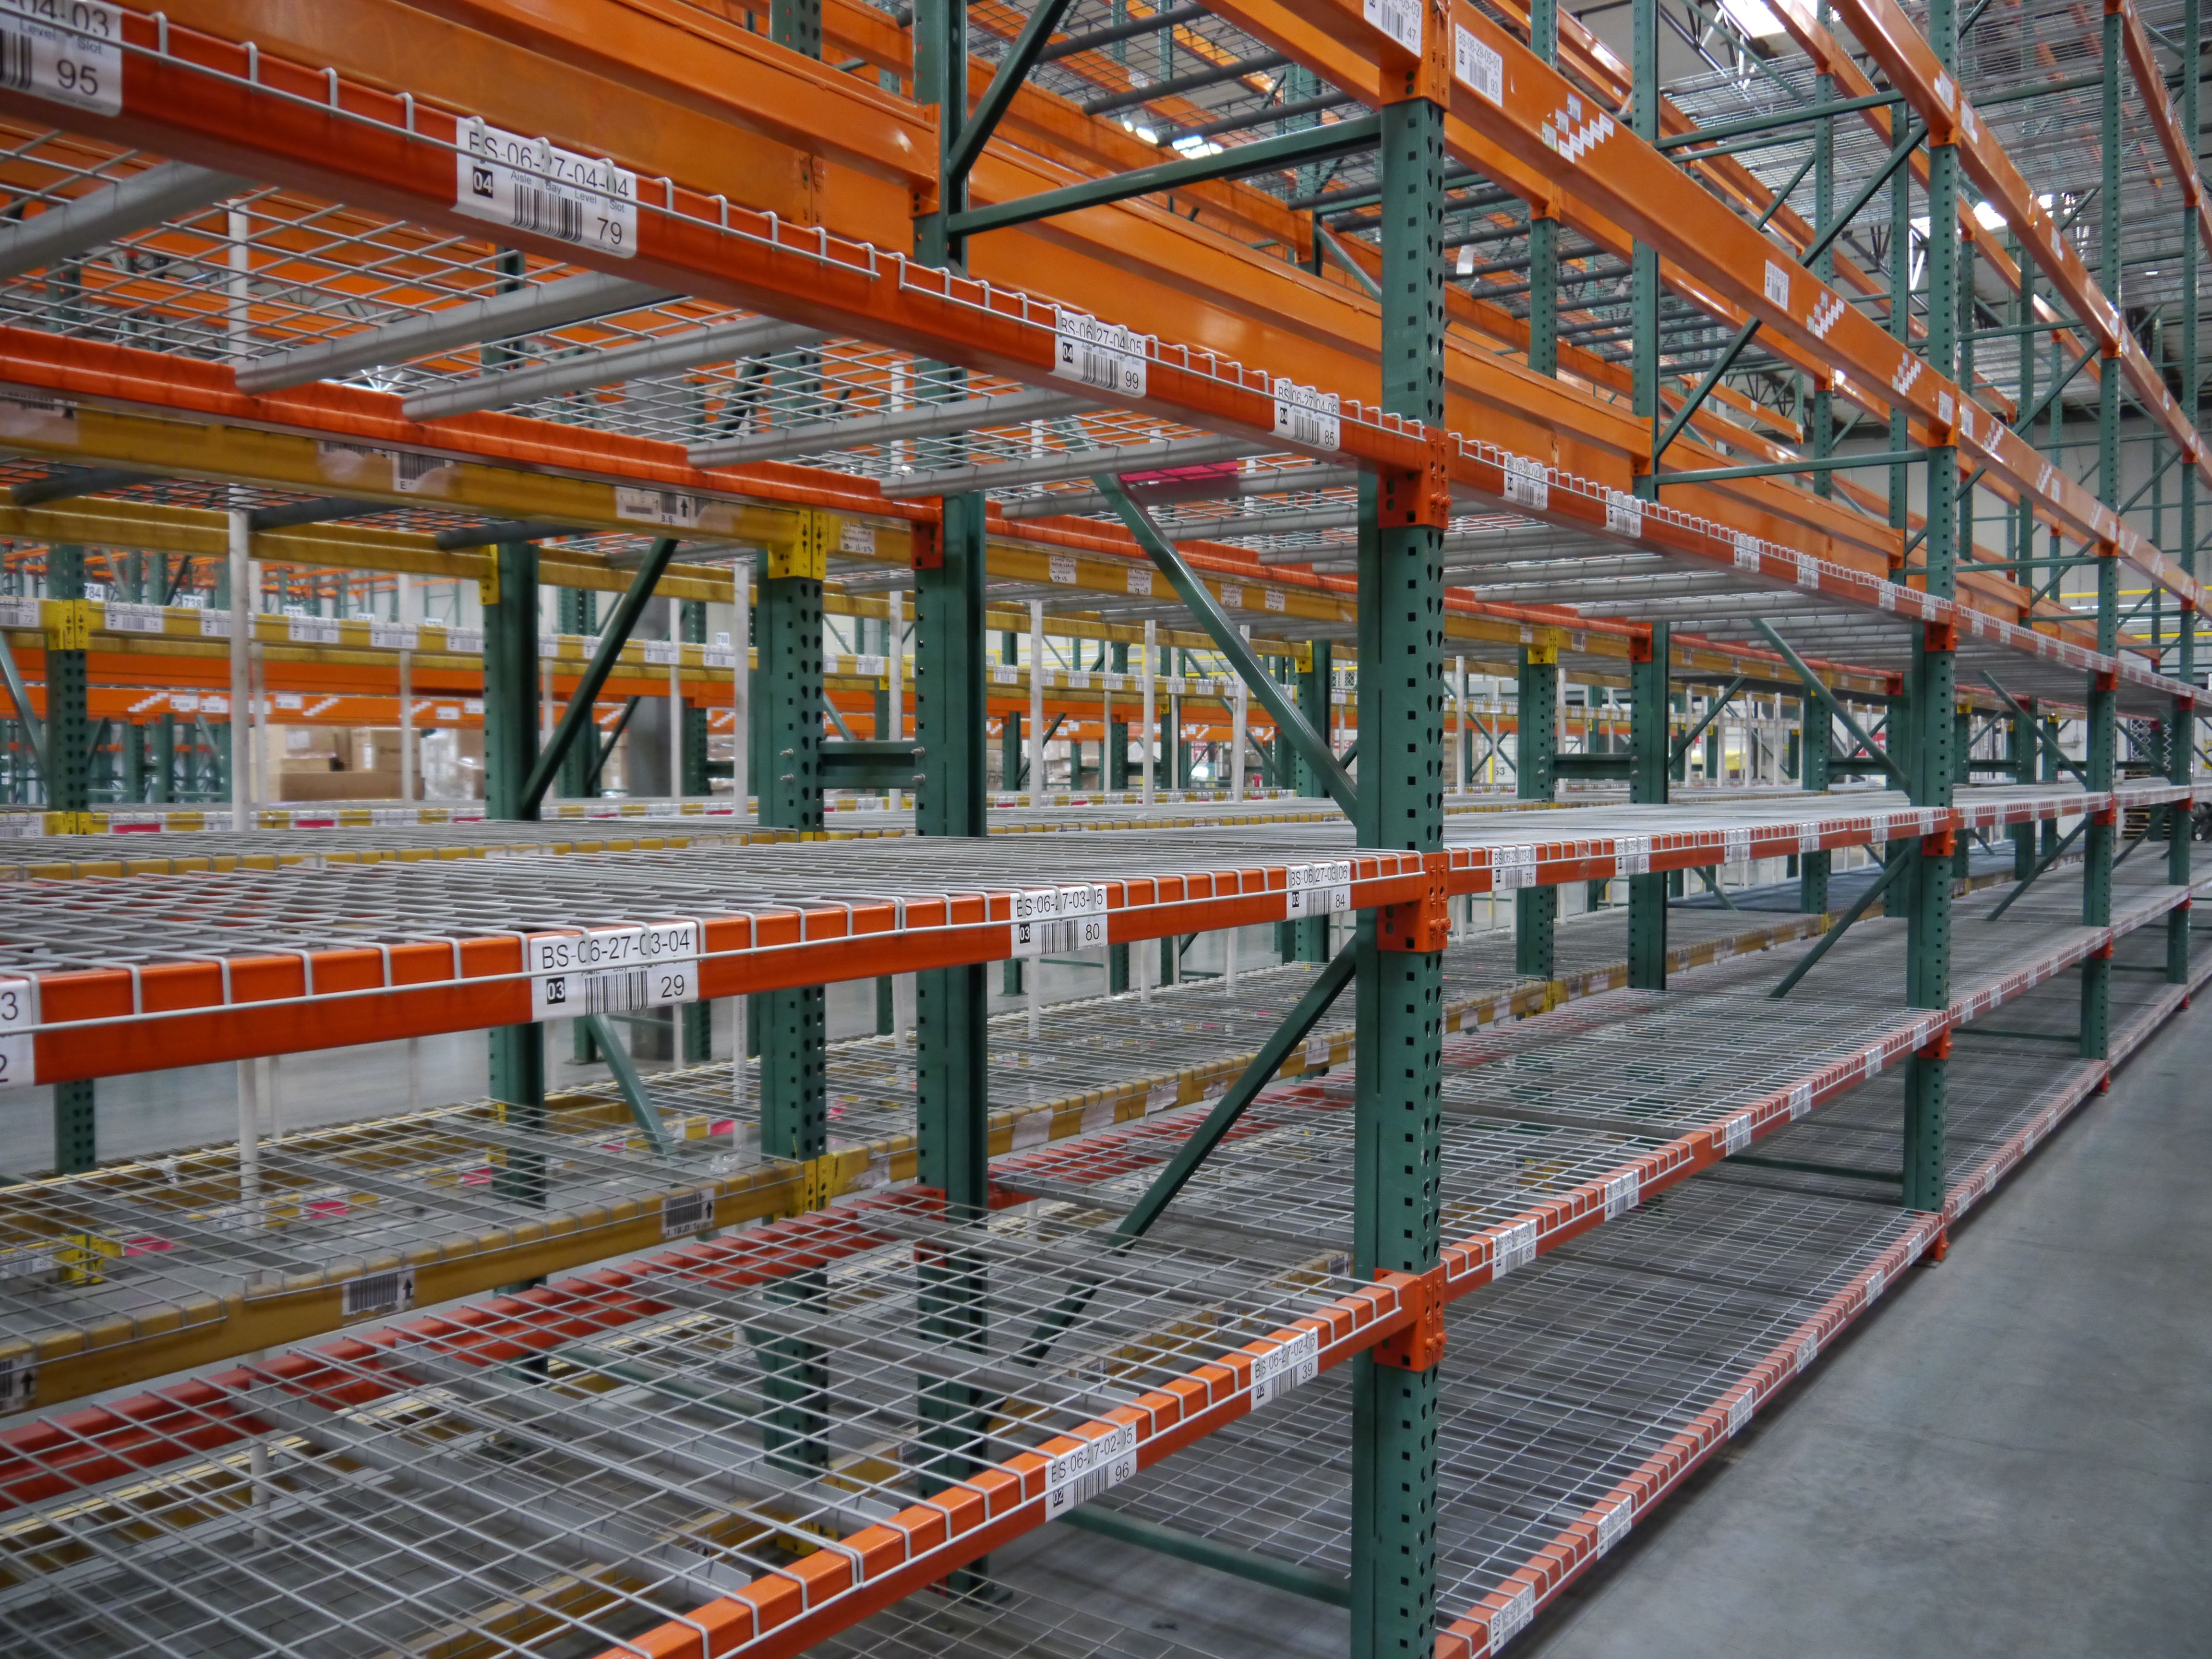 Warehouse Pallet Racks With Over 29 Years Of Warehouse Storage Experience We Know How To Handle Any Warehouse Stor Warehouse Pallet Racking Pallet Rack Pallet